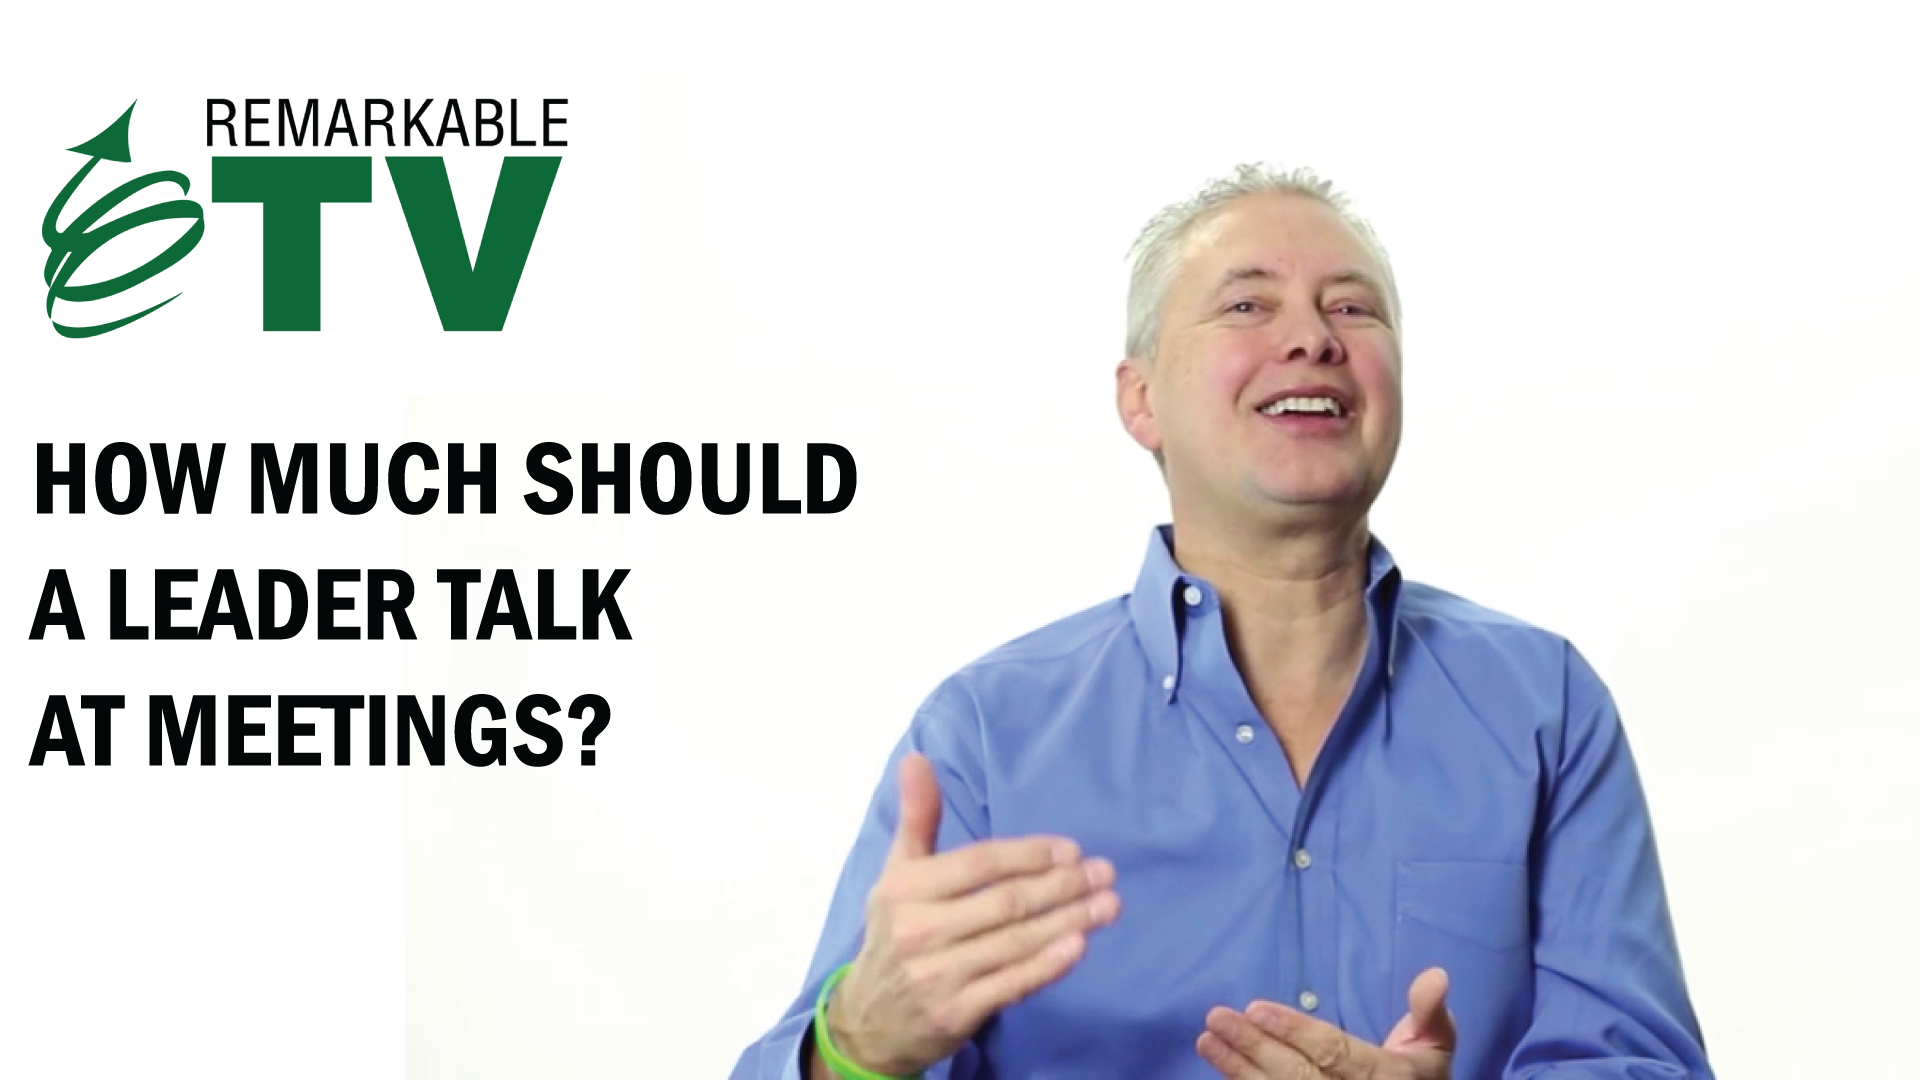 How Much Should a Leader Talk at Meetings? Find out in this episode of Remarkable TV with Kevin Eikenberry